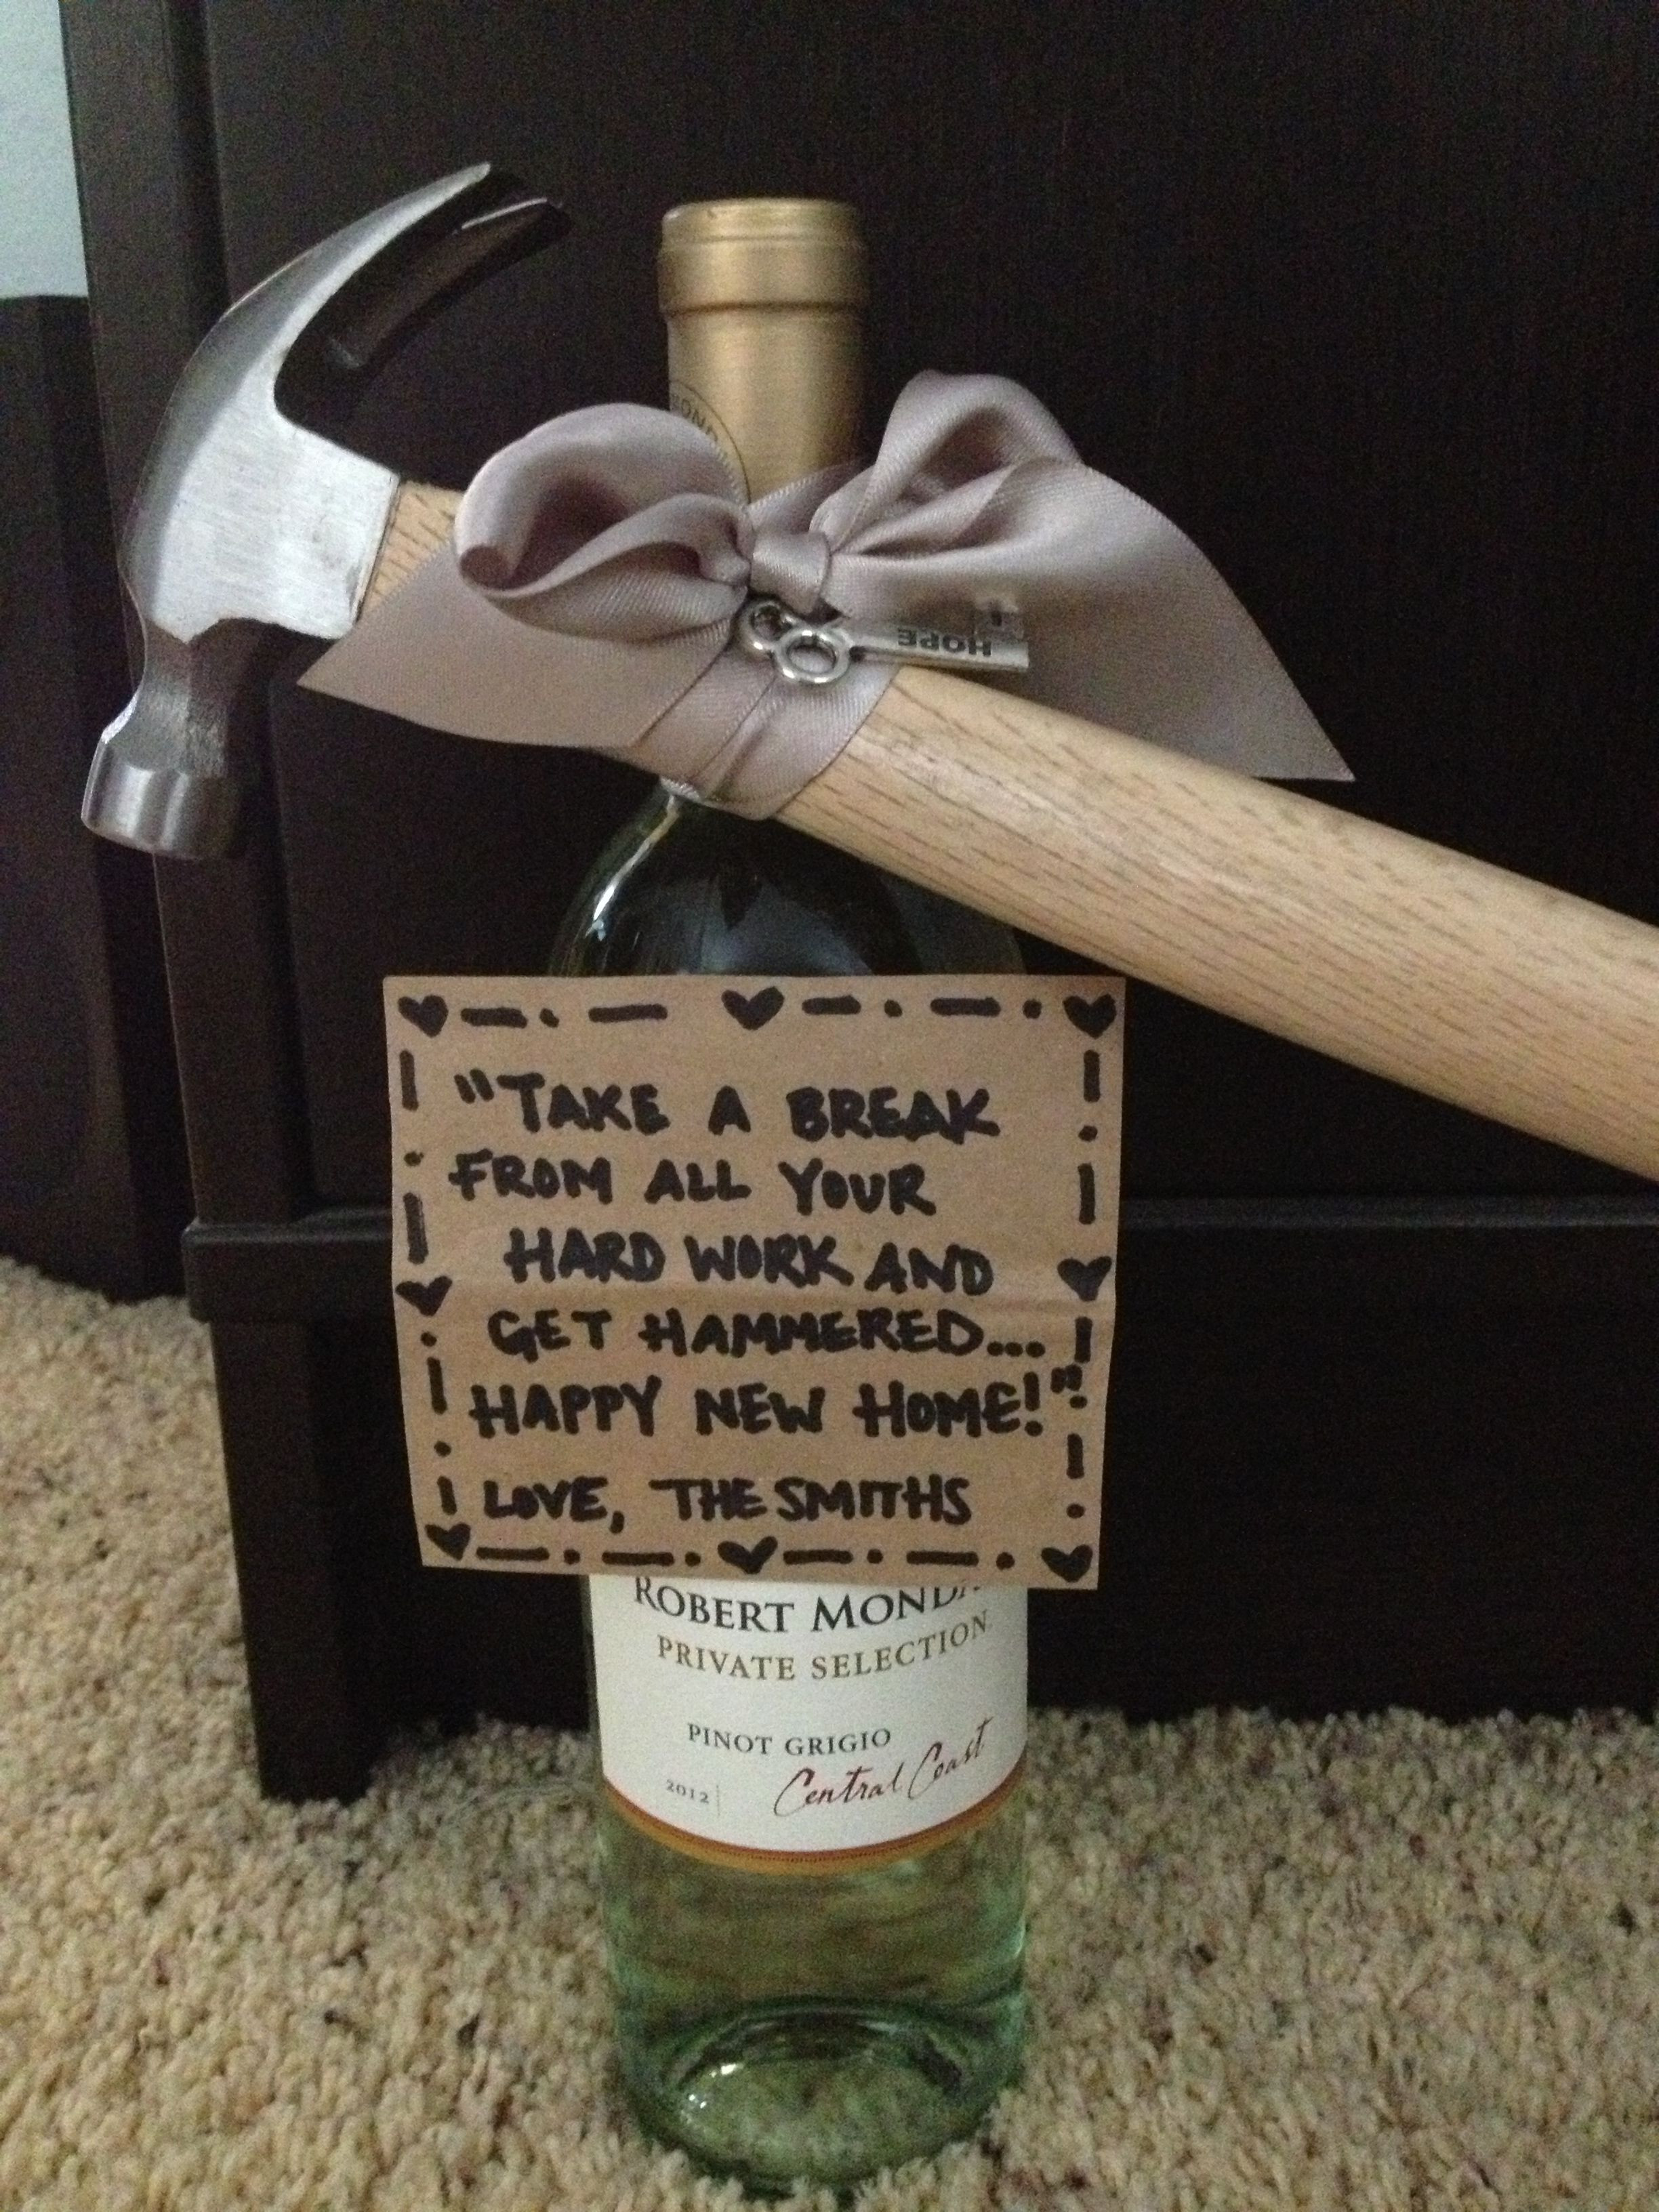 Best ideas about Good Housewarming Gift Ideas . Save or Pin Cute housewarming t Future House Now.